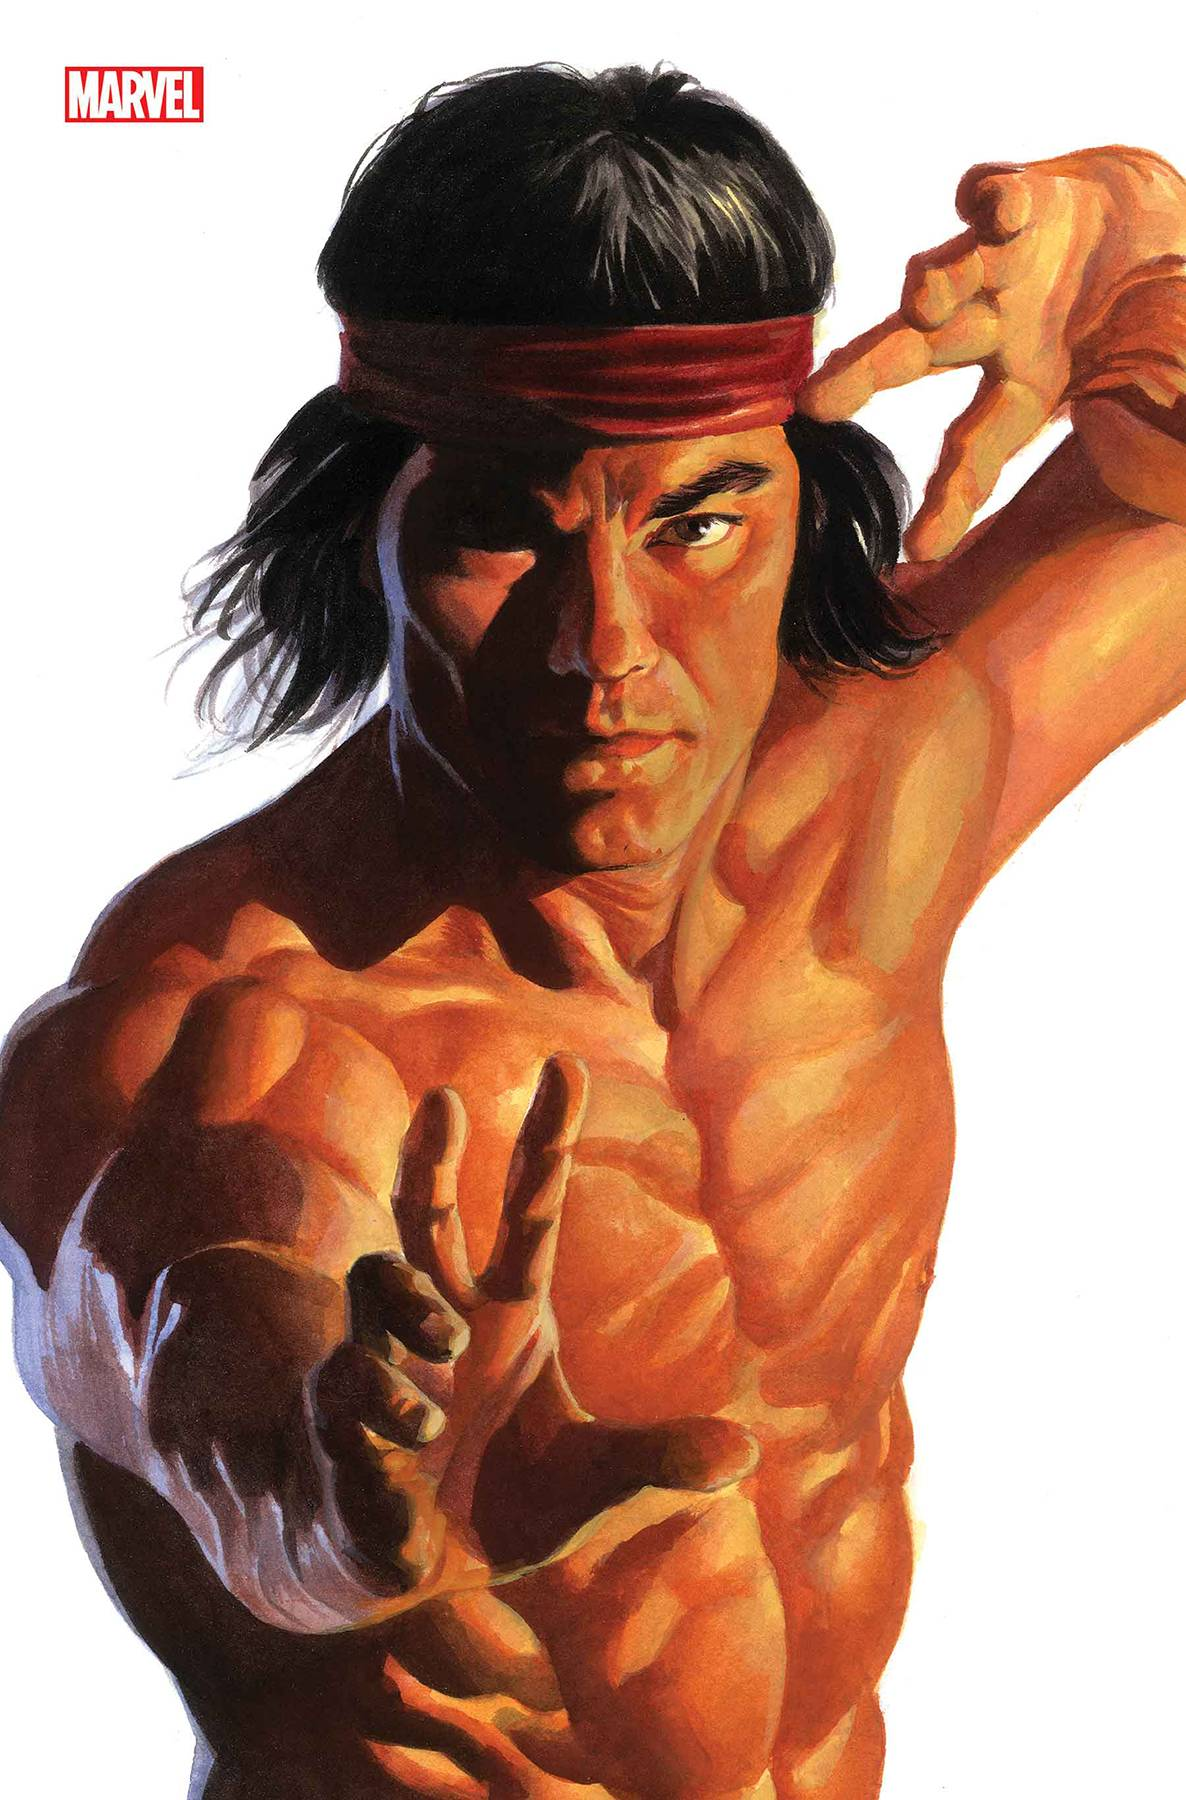 SHANG-CHI #2 (OF 5) ALEX ROSS SHANG-CHI TIMELESS VARIANT